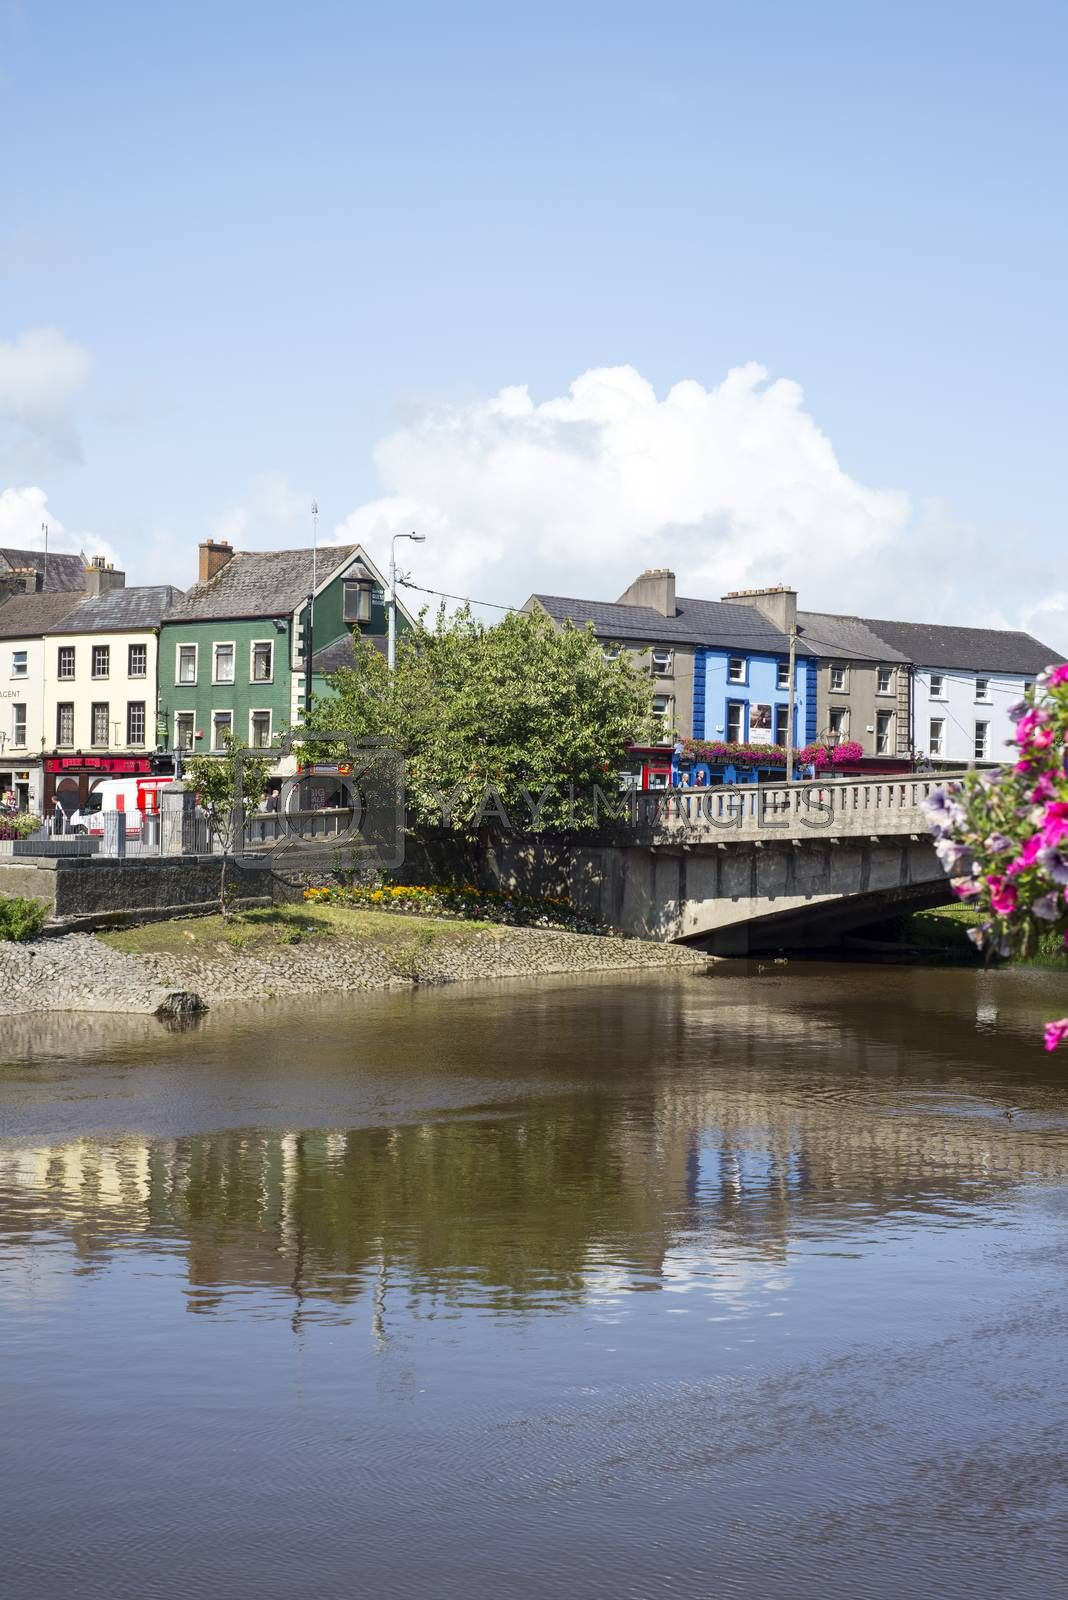 kilkenny town and bridge in reflection on the river nore in ireland